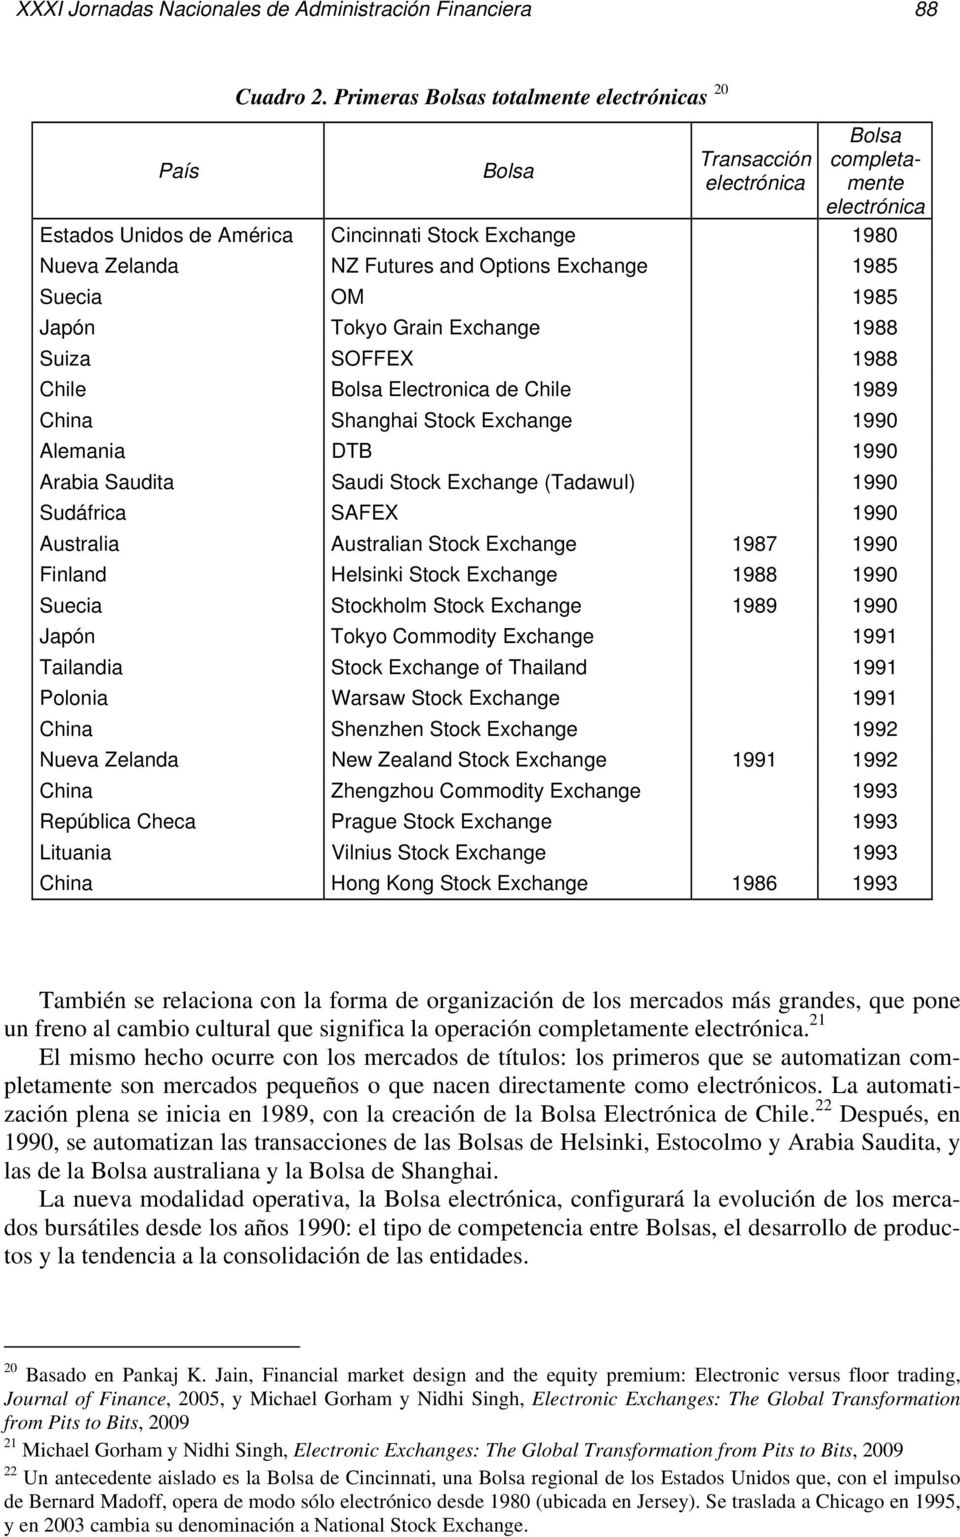 Exchange 1985 Suecia OM 1985 Japón Tokyo Grain Exchange 1988 Suiza SOFFEX 1988 Chile Bolsa Electronica de Chile 1989 China Shanghai Stock Exchange 1990 Alemania DTB 1990 Arabia Saudita Saudi Stock